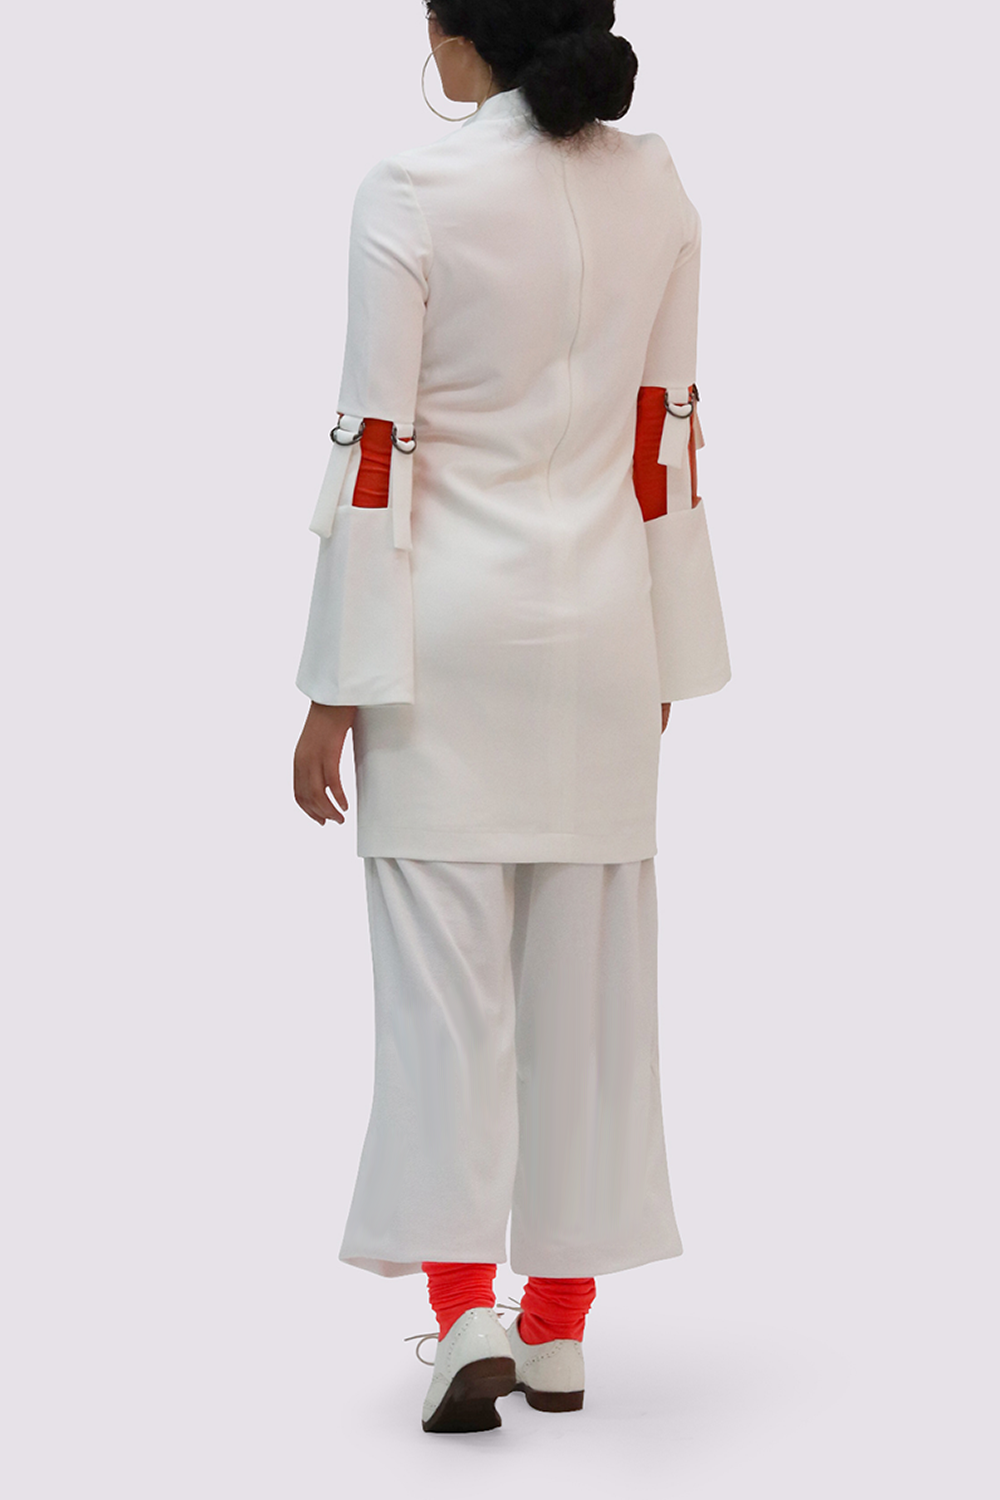 Thais and Stroe White Dress with high collar